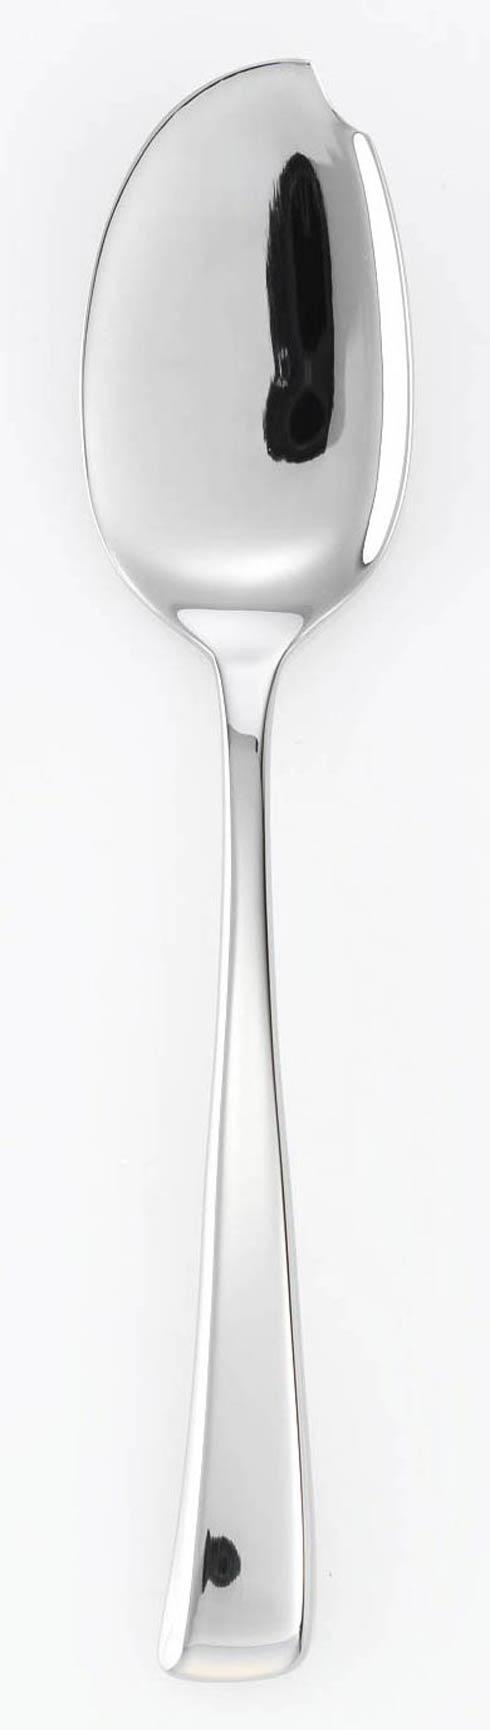 $25.00 French Sauce Spoon